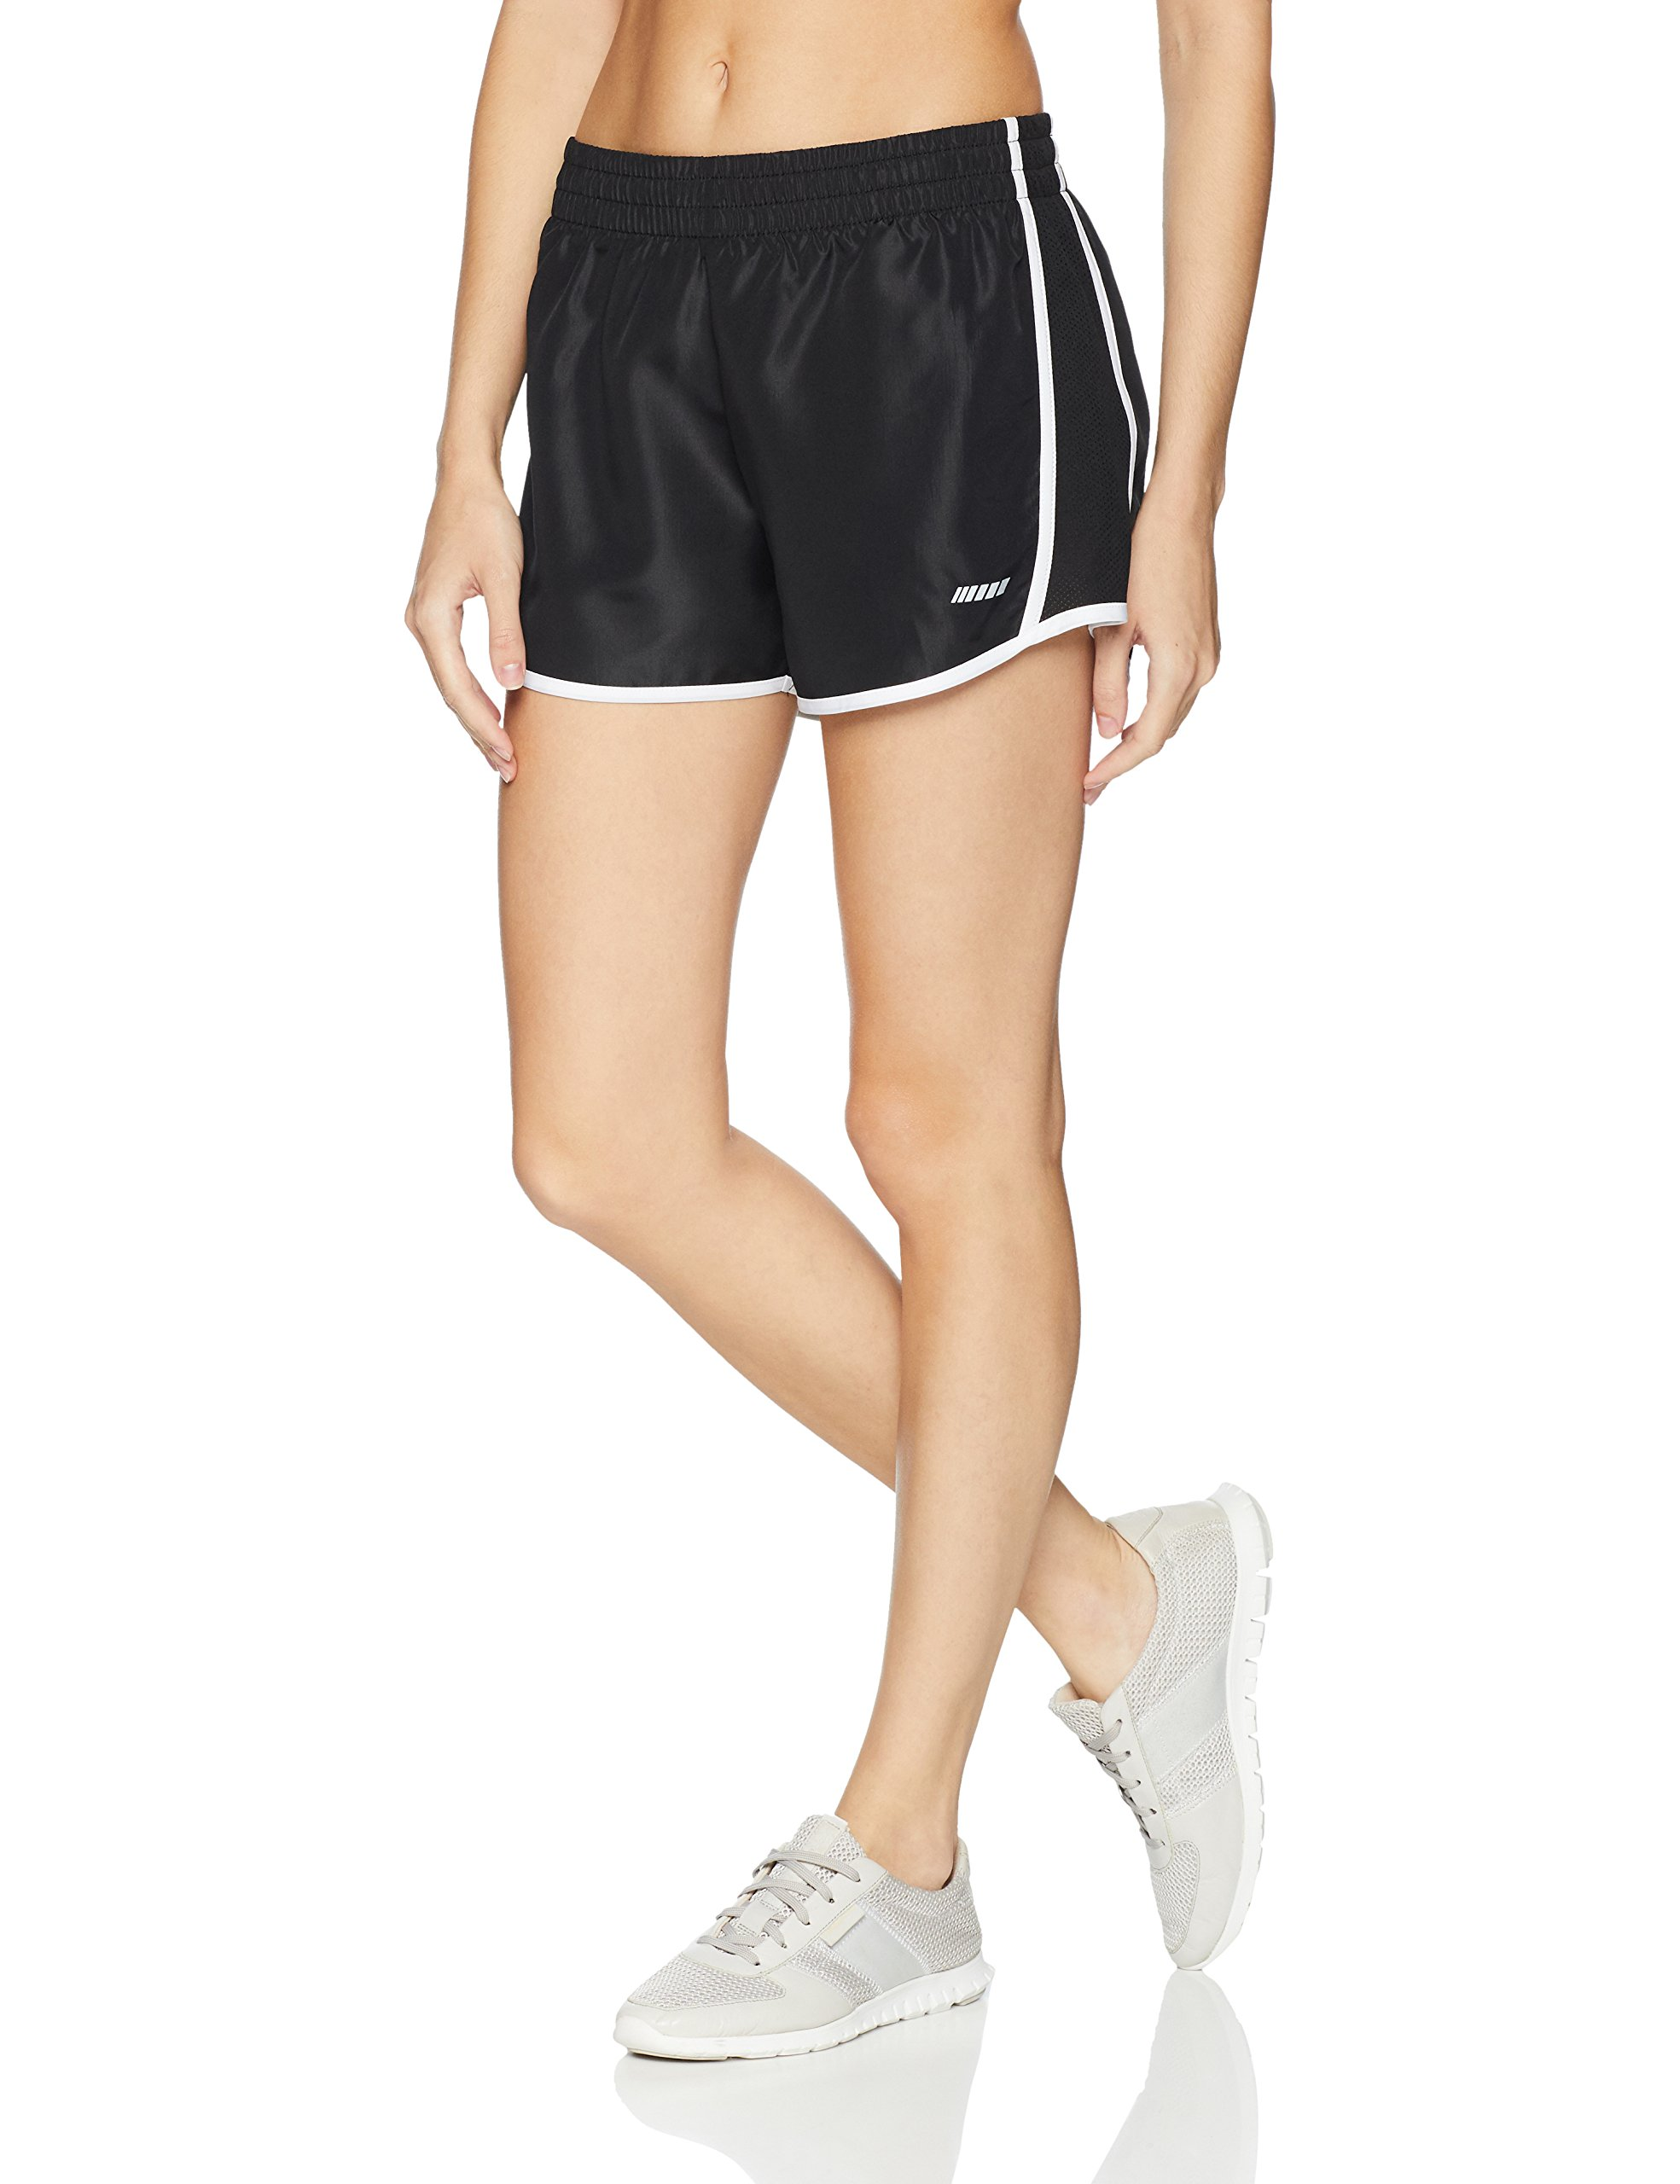 Amazon Essentials Women's Standard Woven Run Short, Black/White, XX-Large